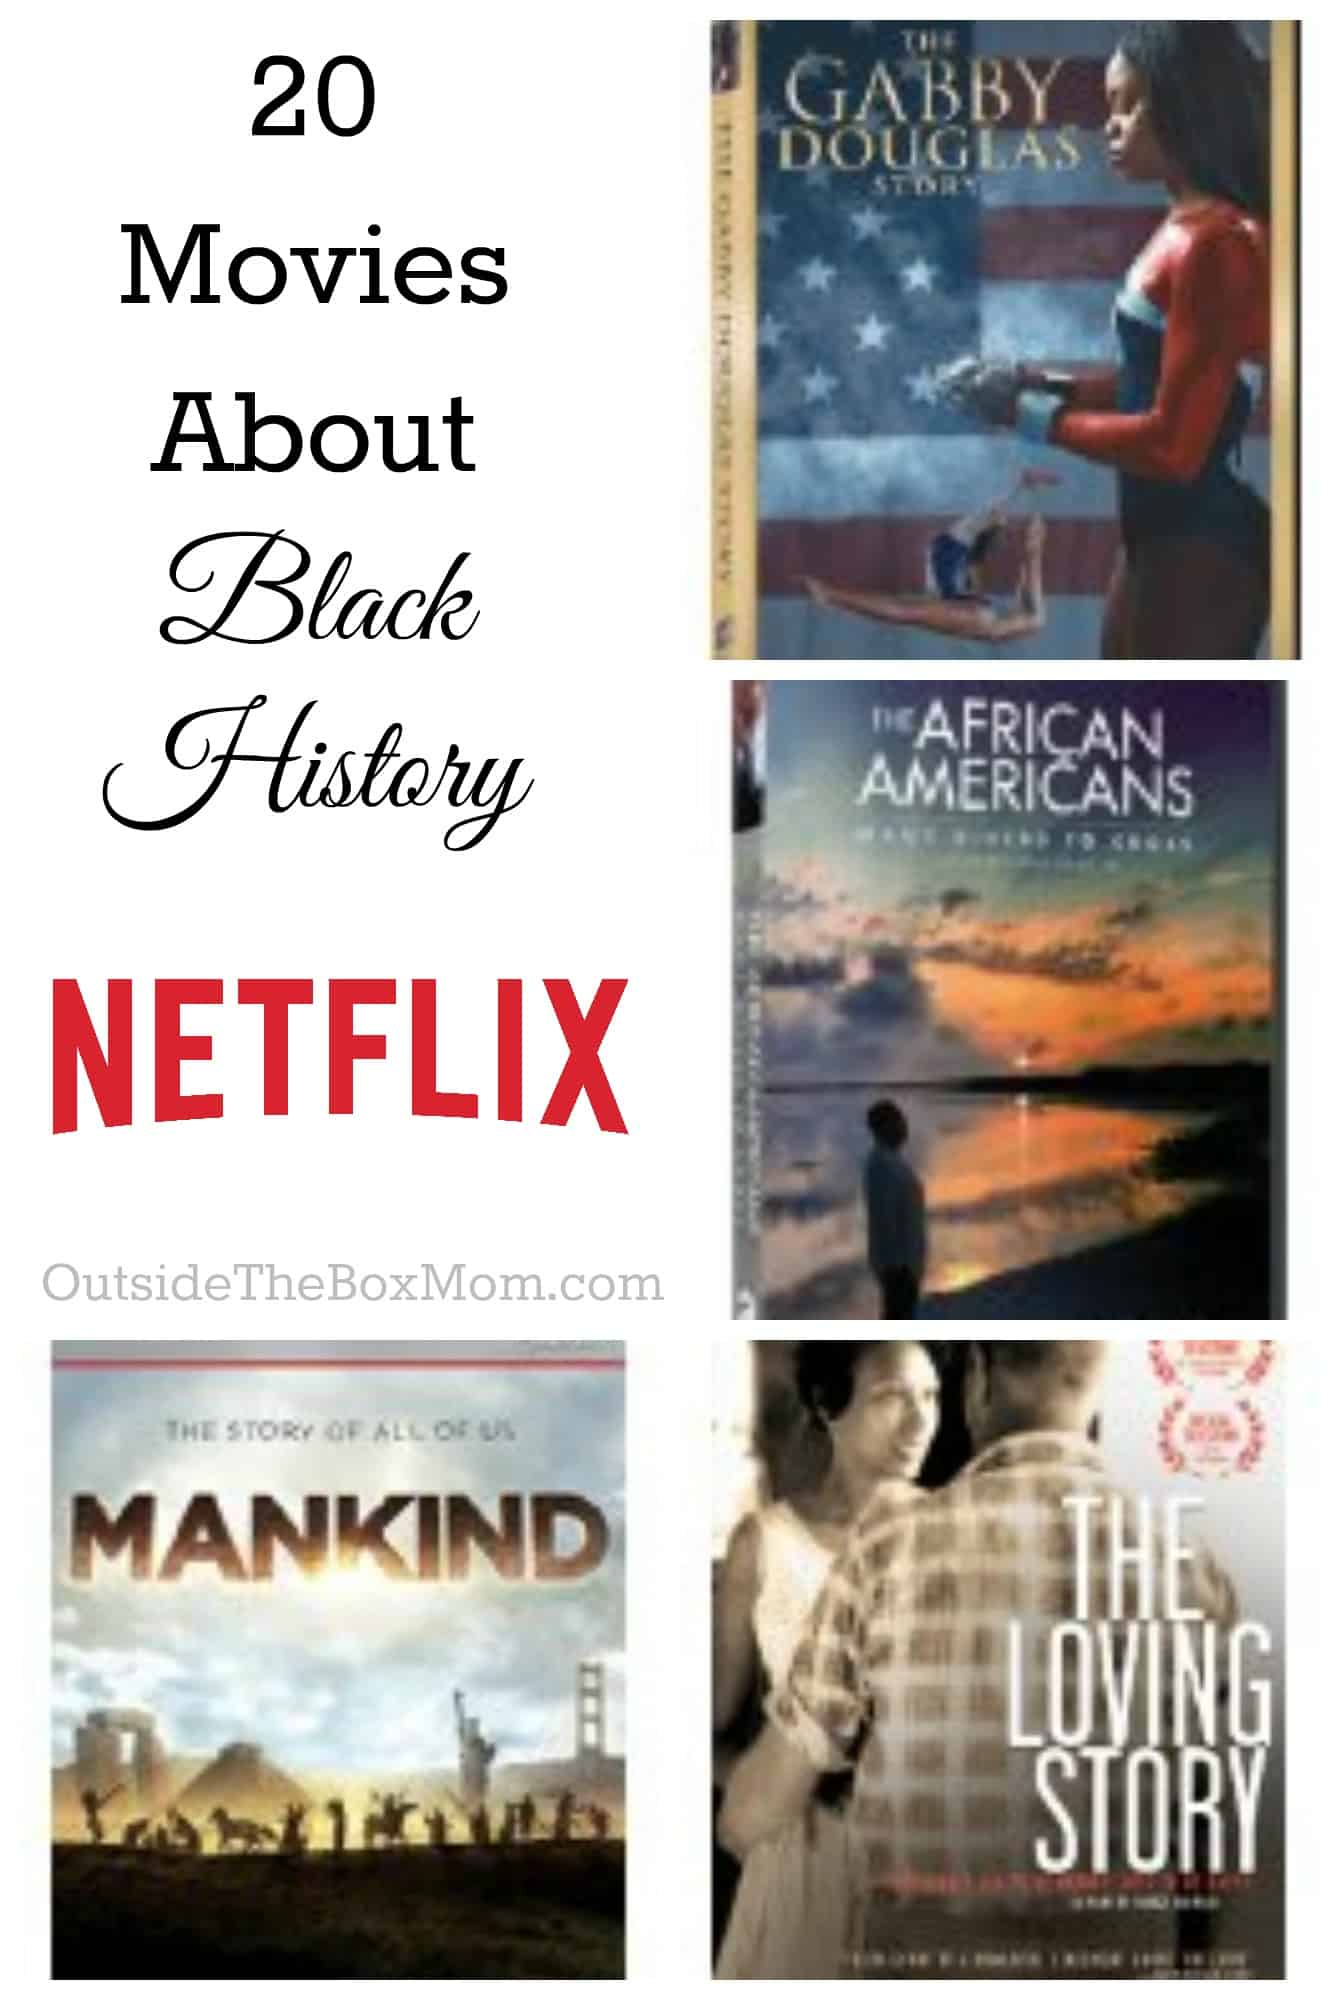 netflix history Netflix is an american media services provider, headquartered in los gatos, california  it is the first ever company acquisition in netflix's history netflix plans to leverage millar and his current and future work for future original content.